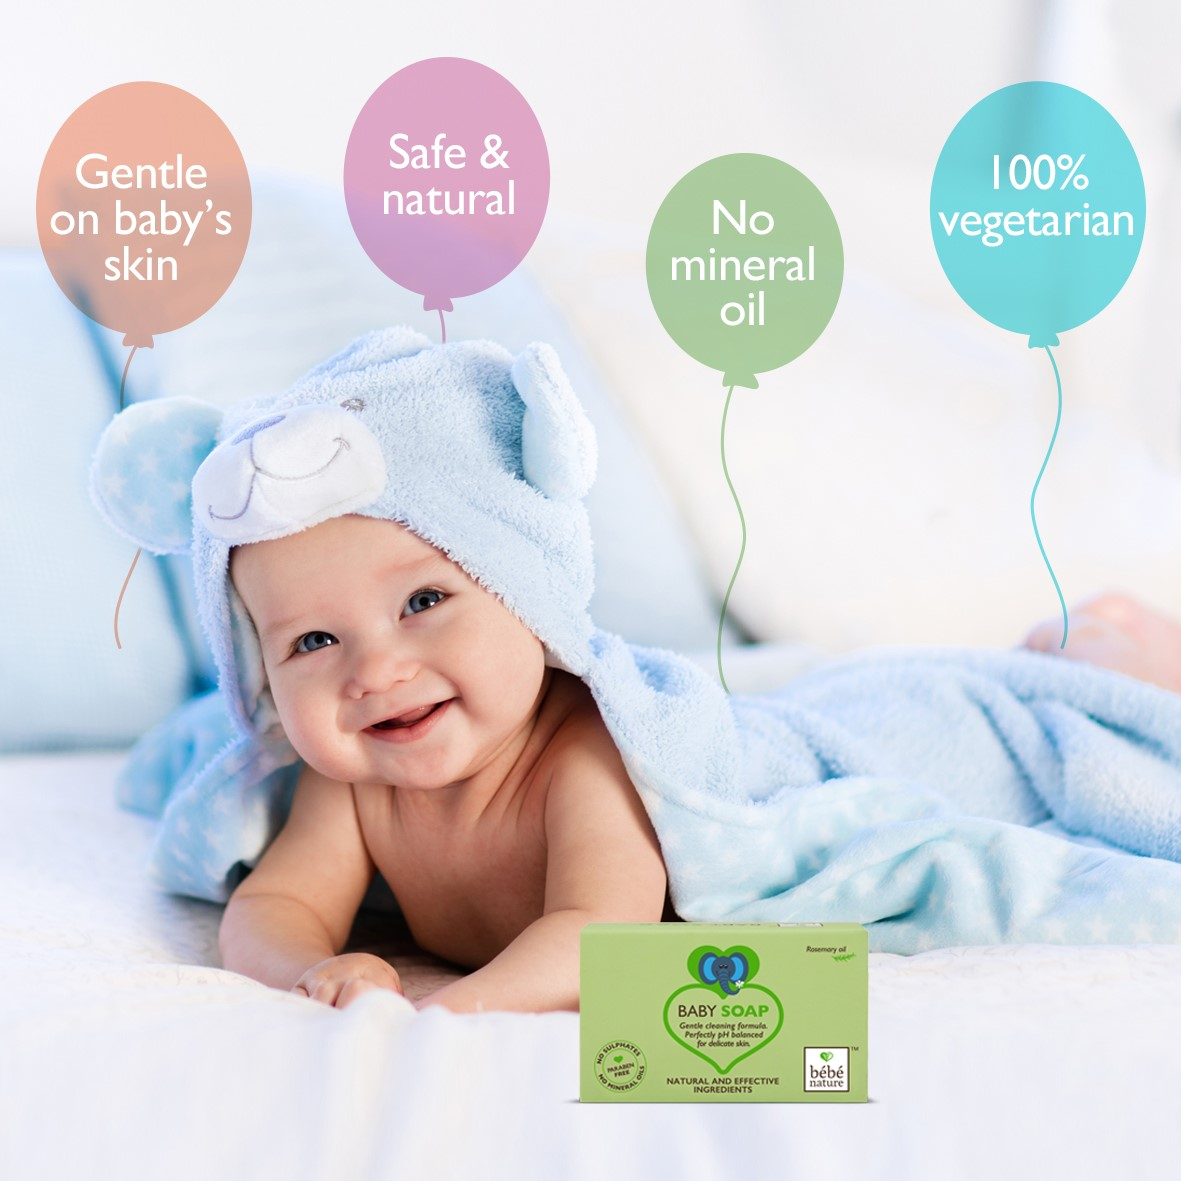 Bebe Nature + baby bath & shampoo + Bebe Nature Natural 100% Veg Baby Soap With Rosemary Oil + 100 gm + online